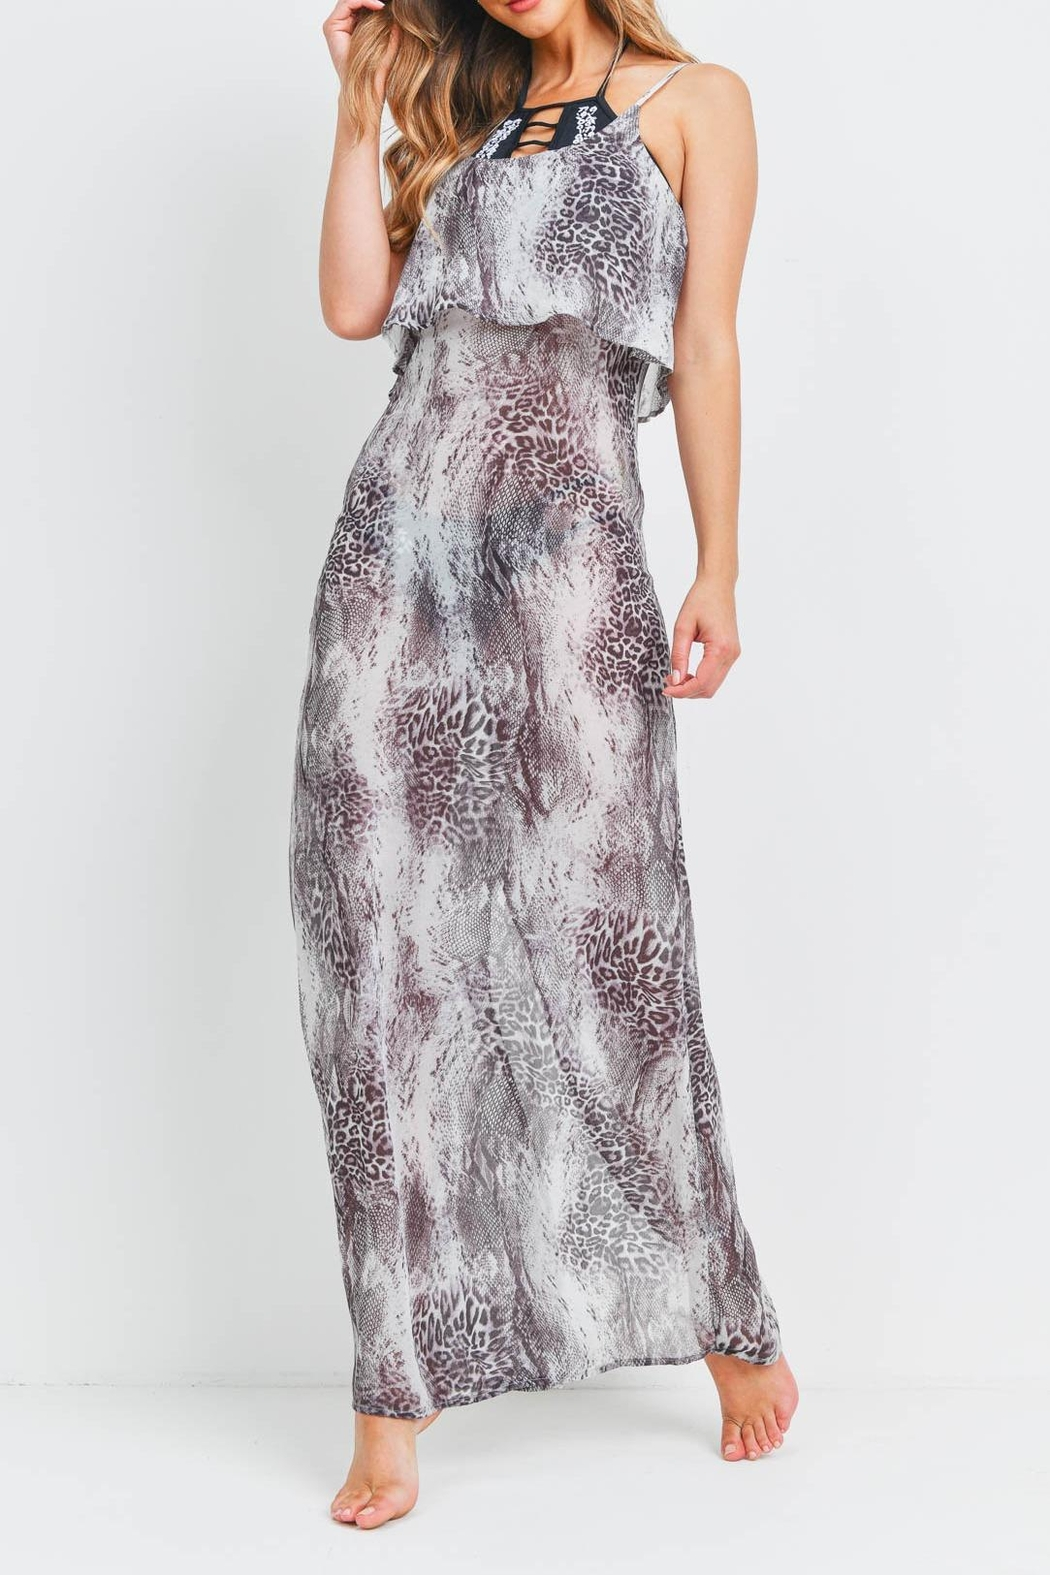 Riah Fashion Gray-Animal-Print-Beach-Cover-Up-See-Through-Dress - Side Cropped Image